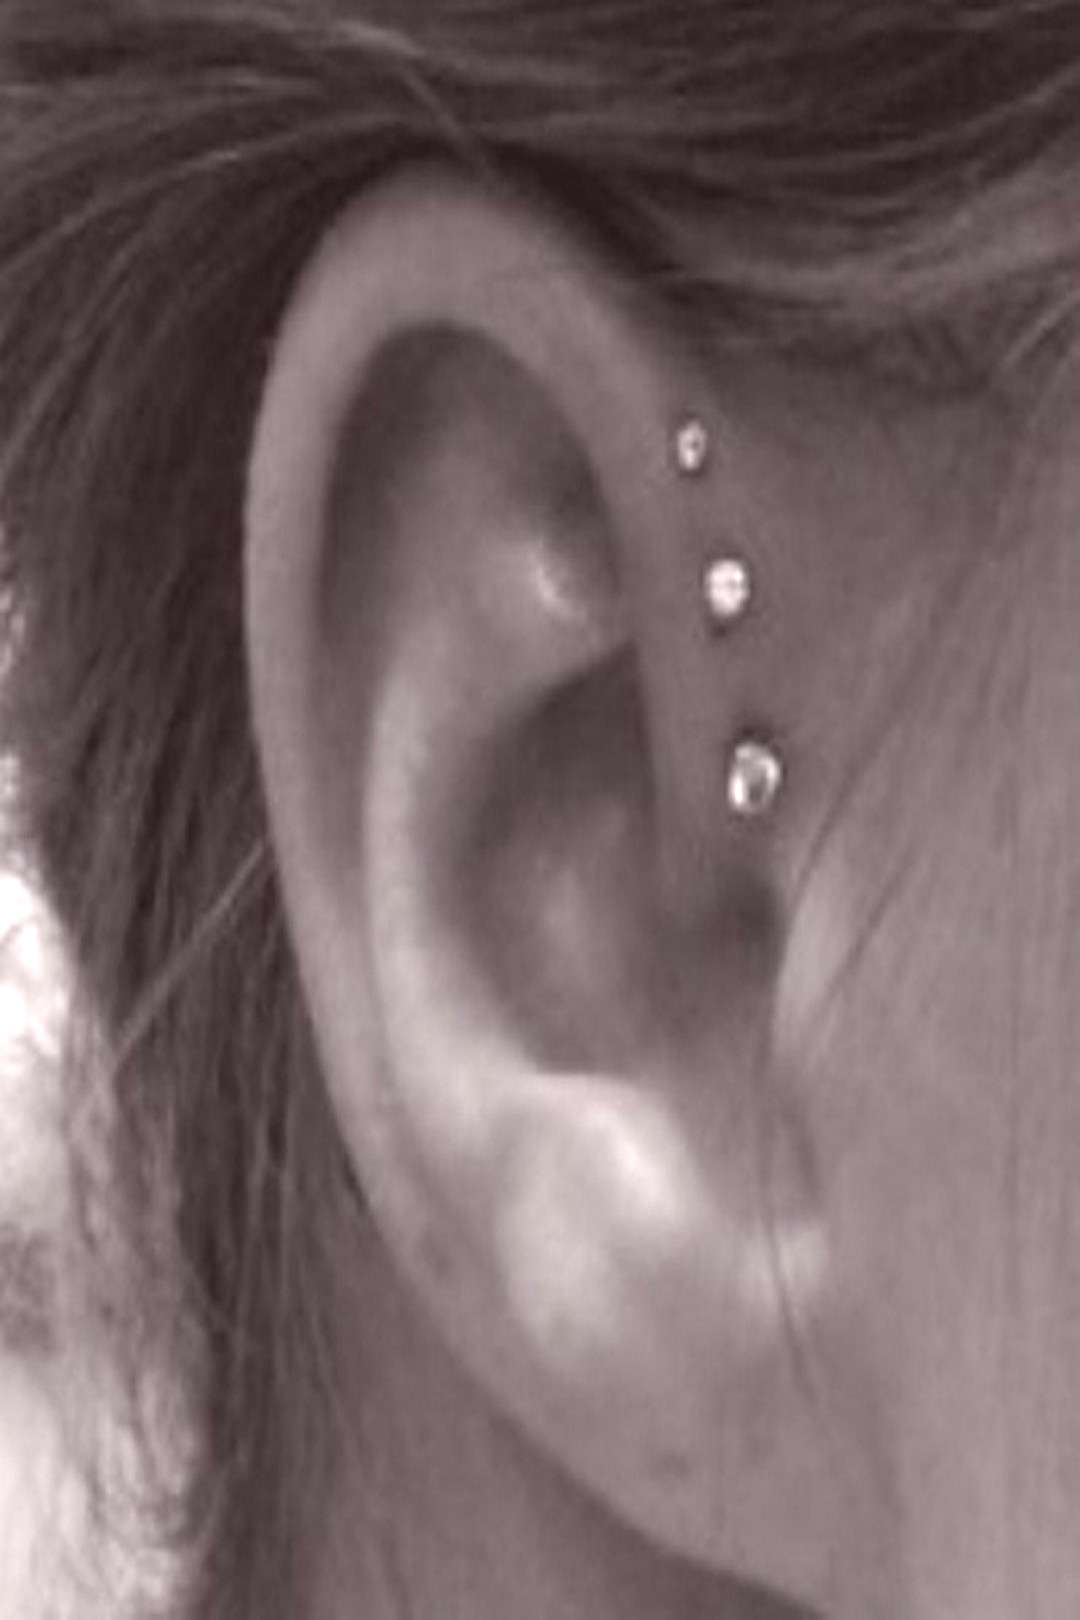 When it comes to your ears, the piercing possibilities are endless. If you haven't taken a look b